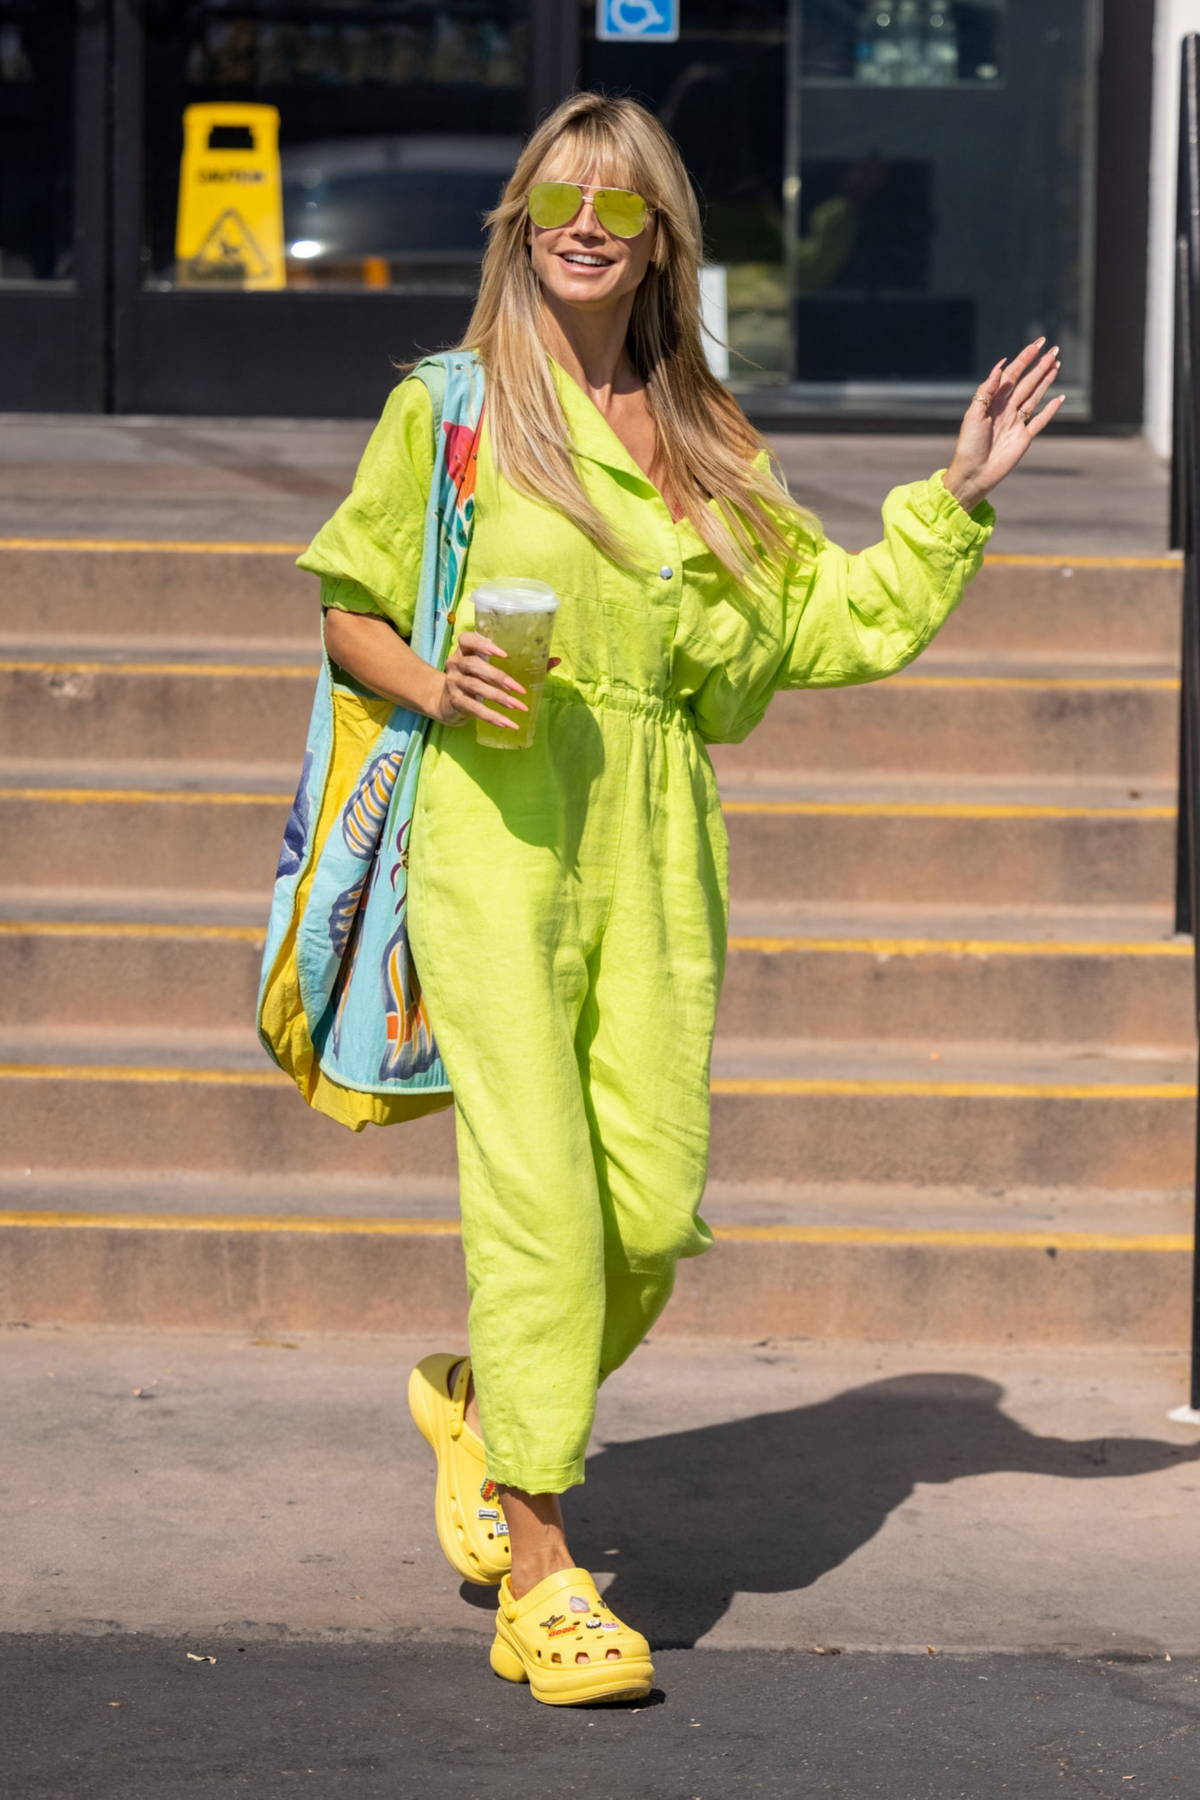 Heidi Klum stands out in a neon-green jumpsuit and yellow crocs while she grabs an iced drink at Starbucks in Los Angeles